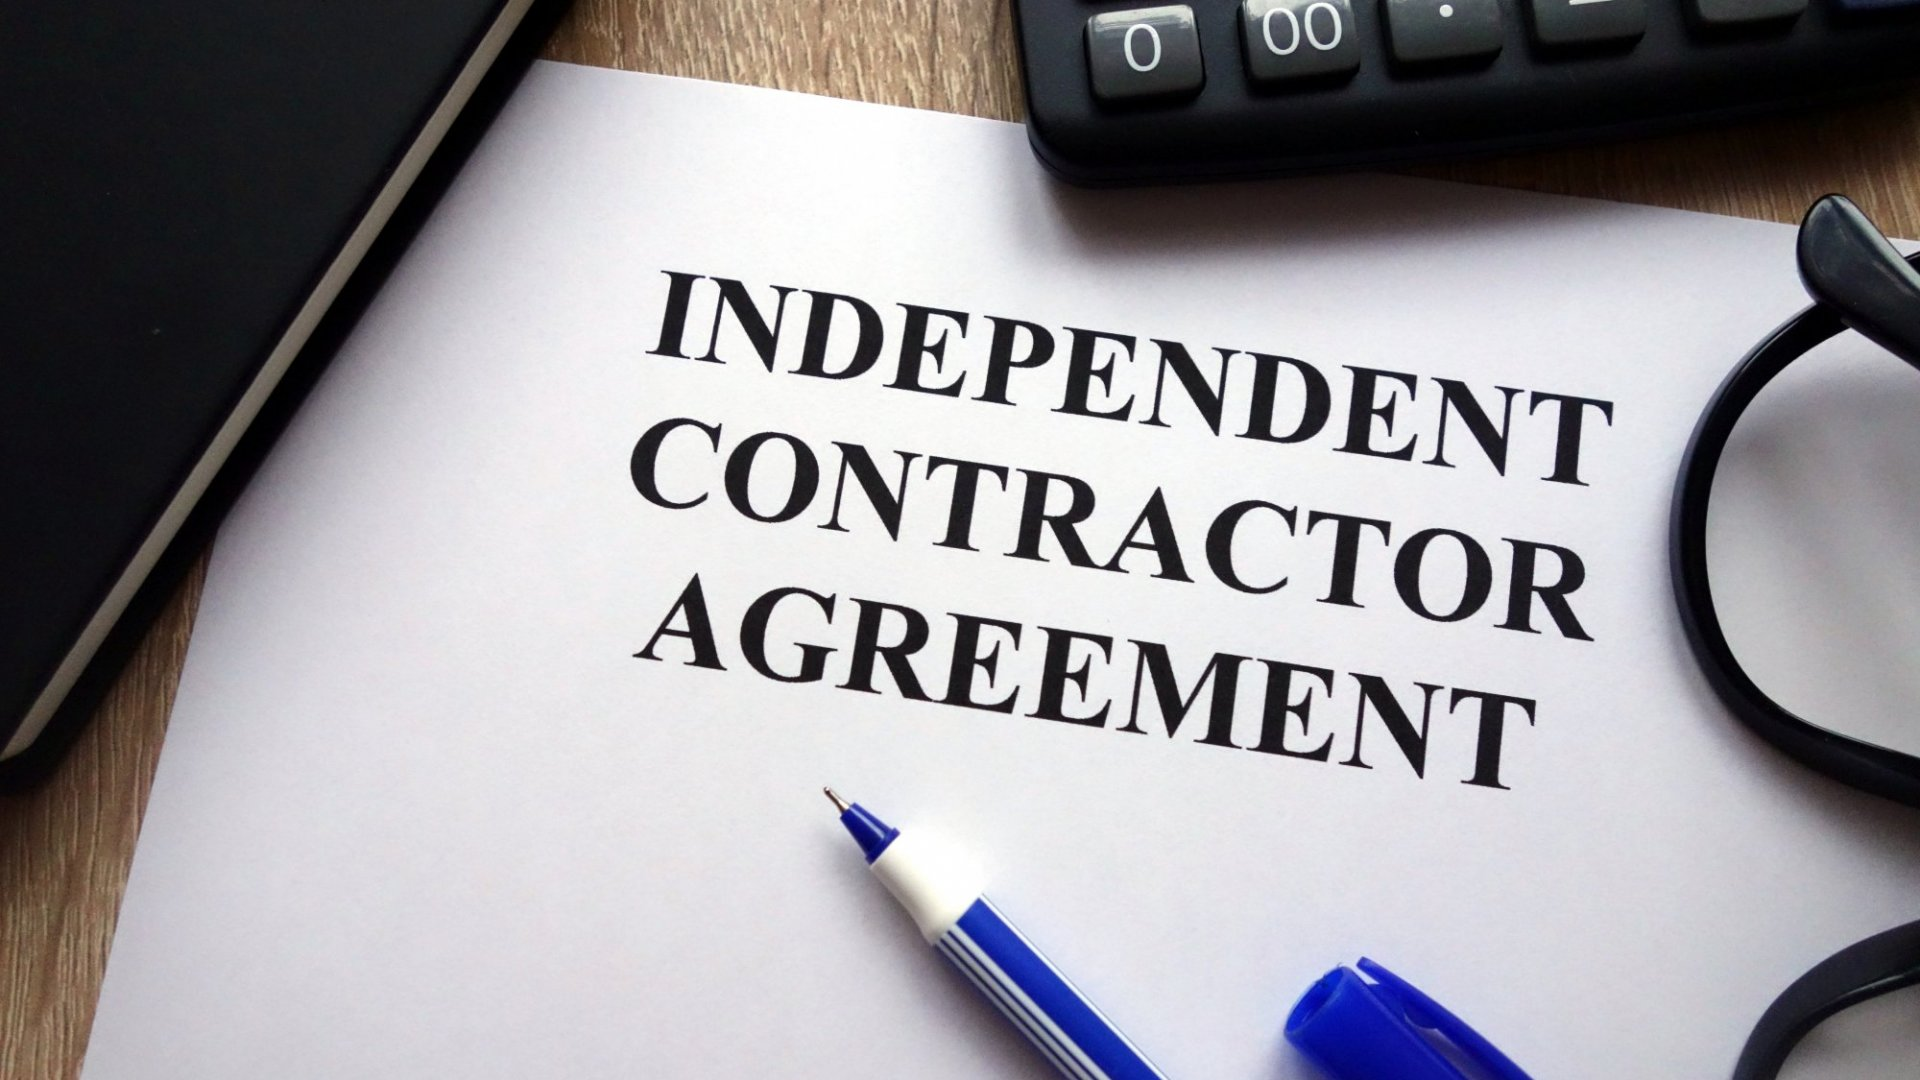 Don't Hire an Independent Contractor Without Asking These 4 Questions